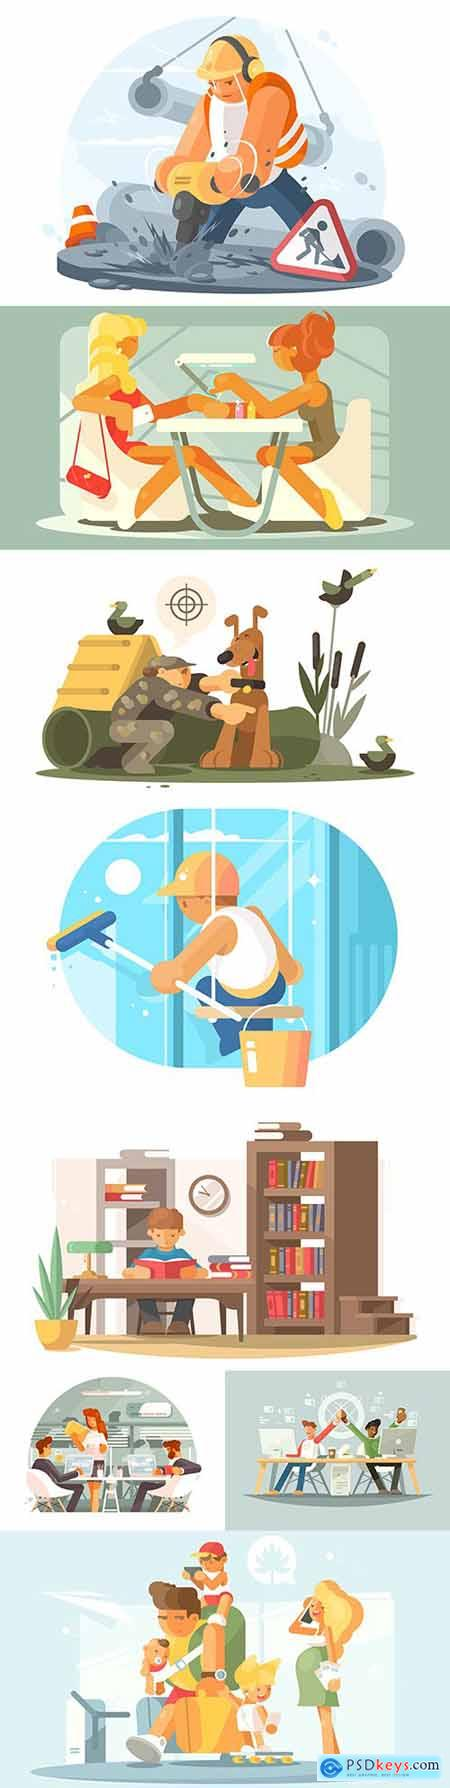 Different people at work and leisure modern design illustration